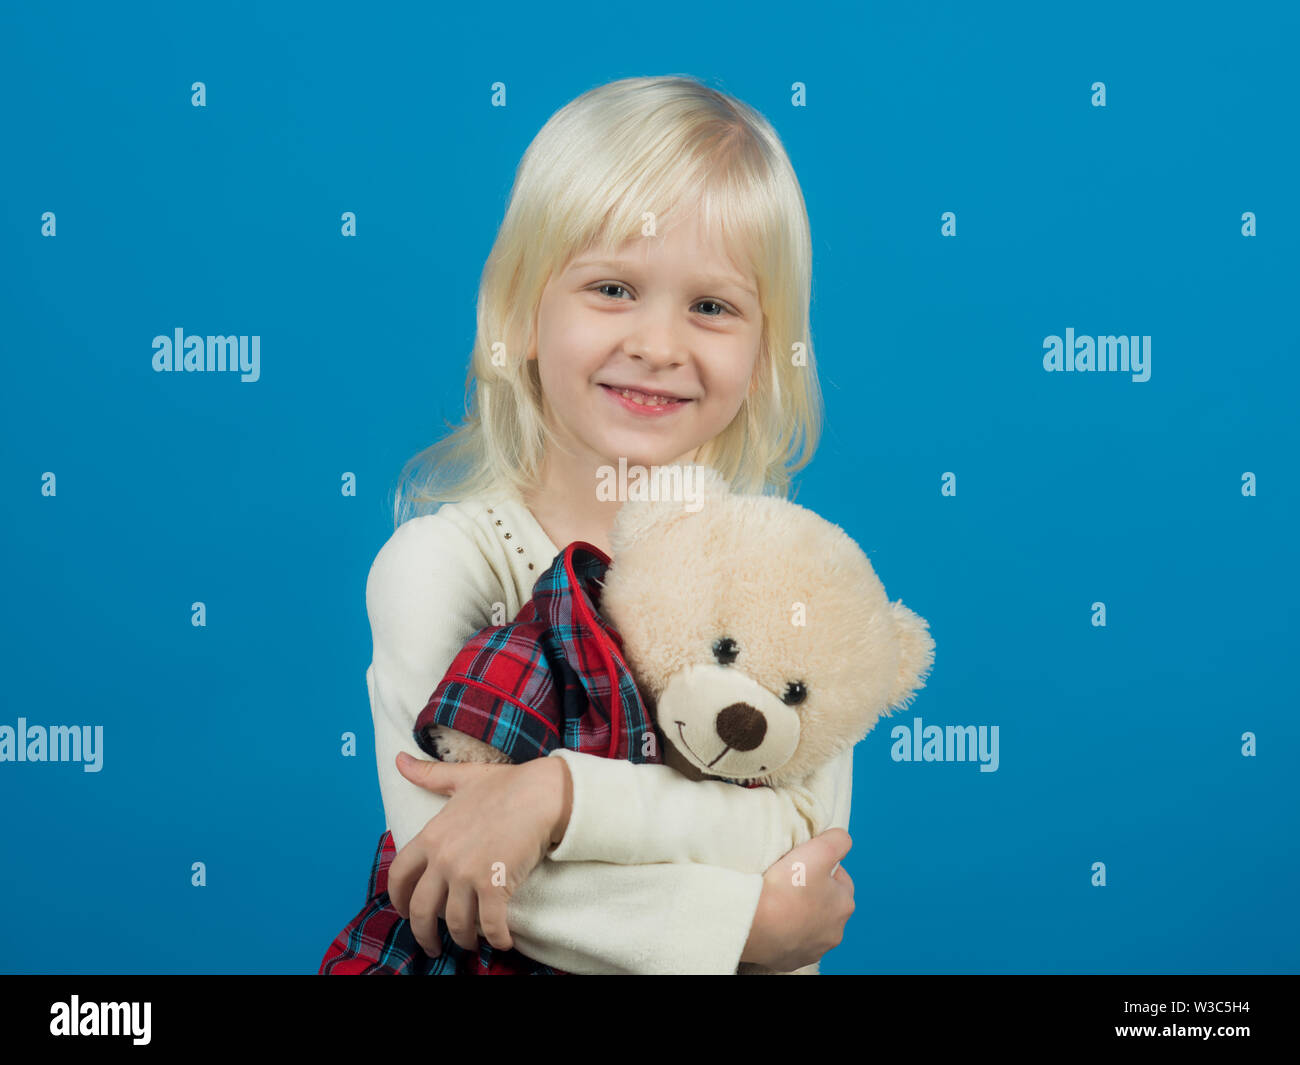 Cuddly toy. Small kid happy smiling. Happy childhood. My favorite childhood toy. Little girl with teddy bear. Small girl hold toy bear. Little child w - Stock Image